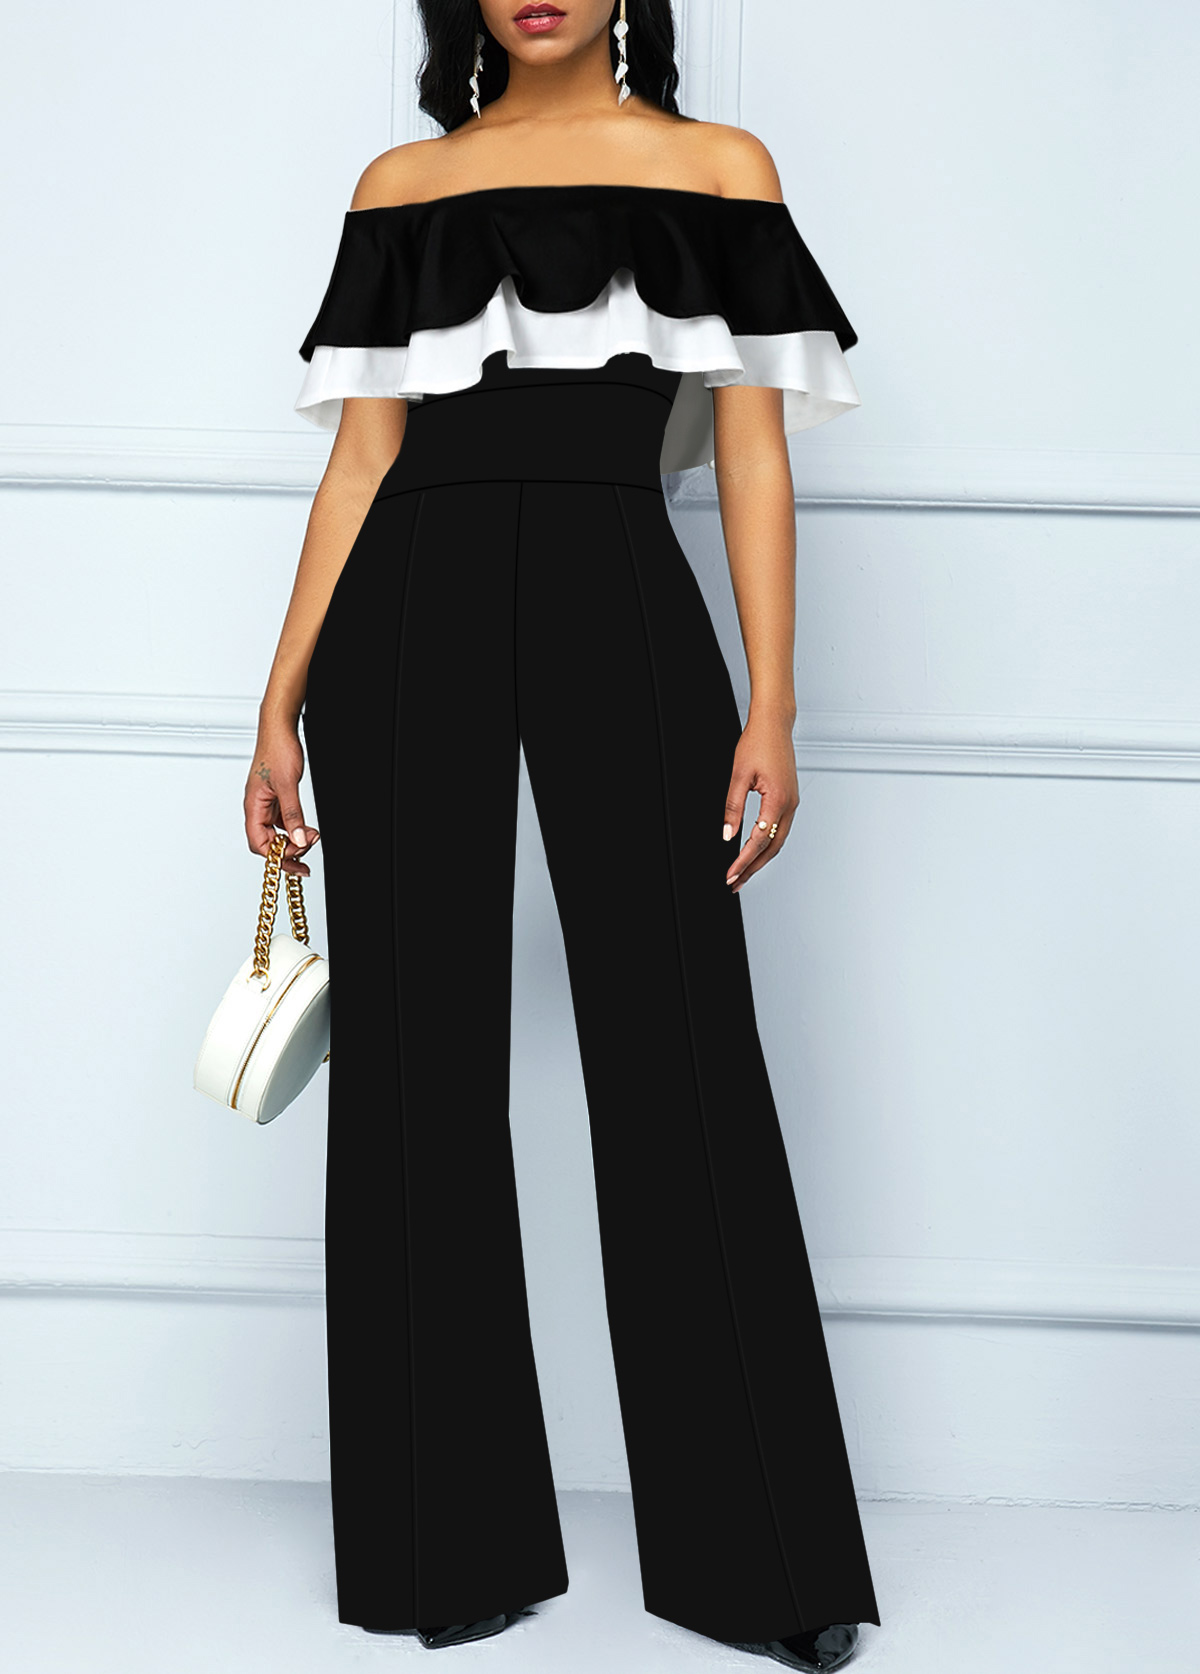 Ruffle Overlay Off the Shoulder Black Jumpsuit